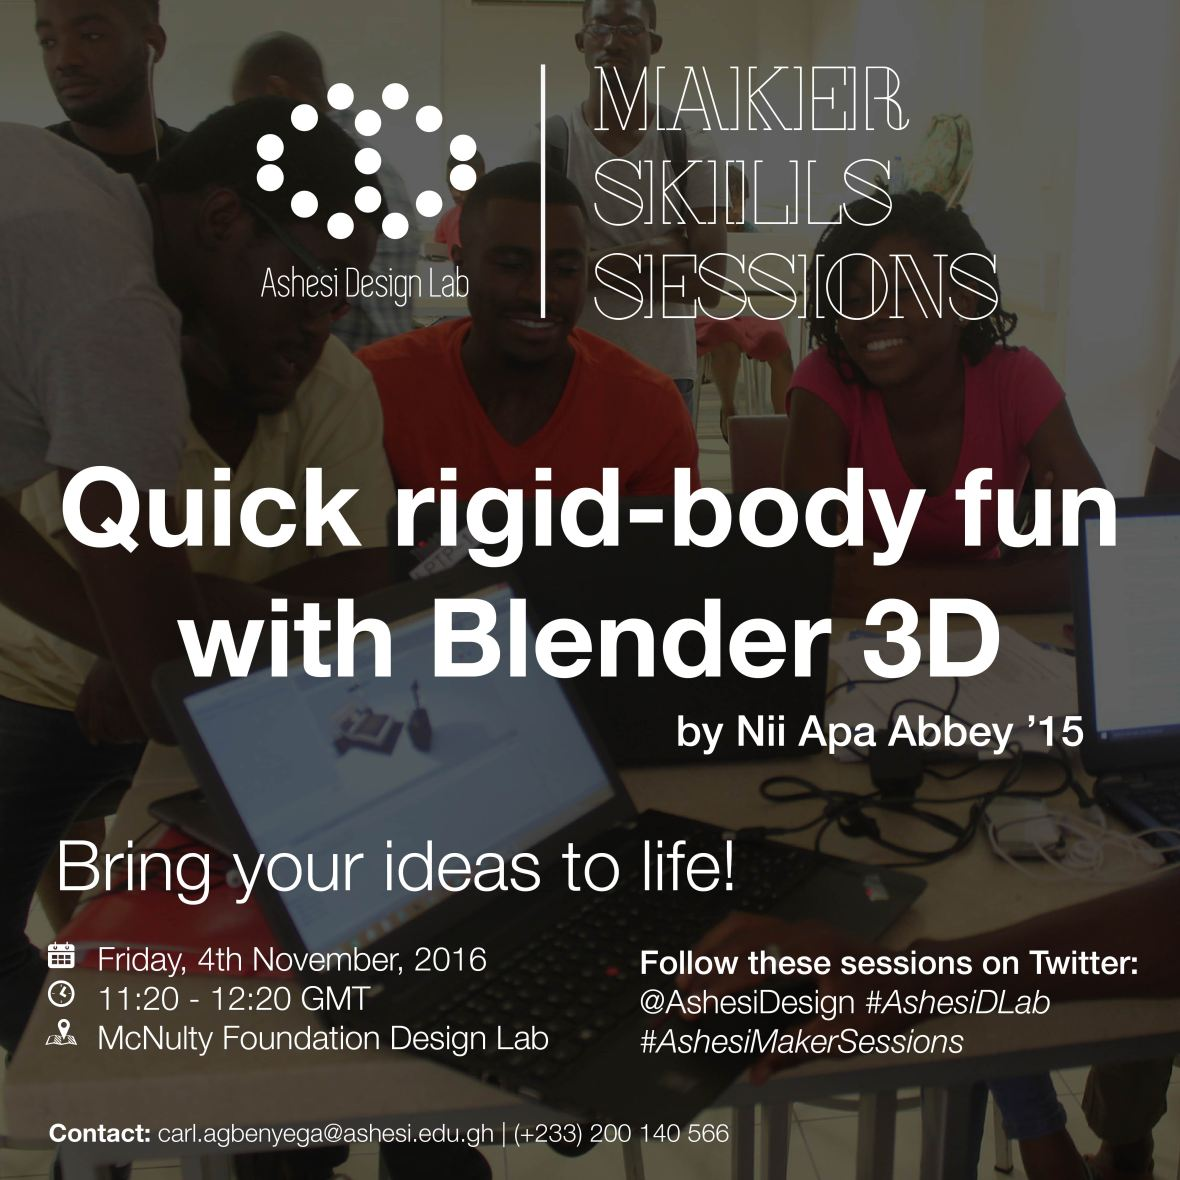 ashesi-dlab-maker-skills-sessions-blender-3d-01